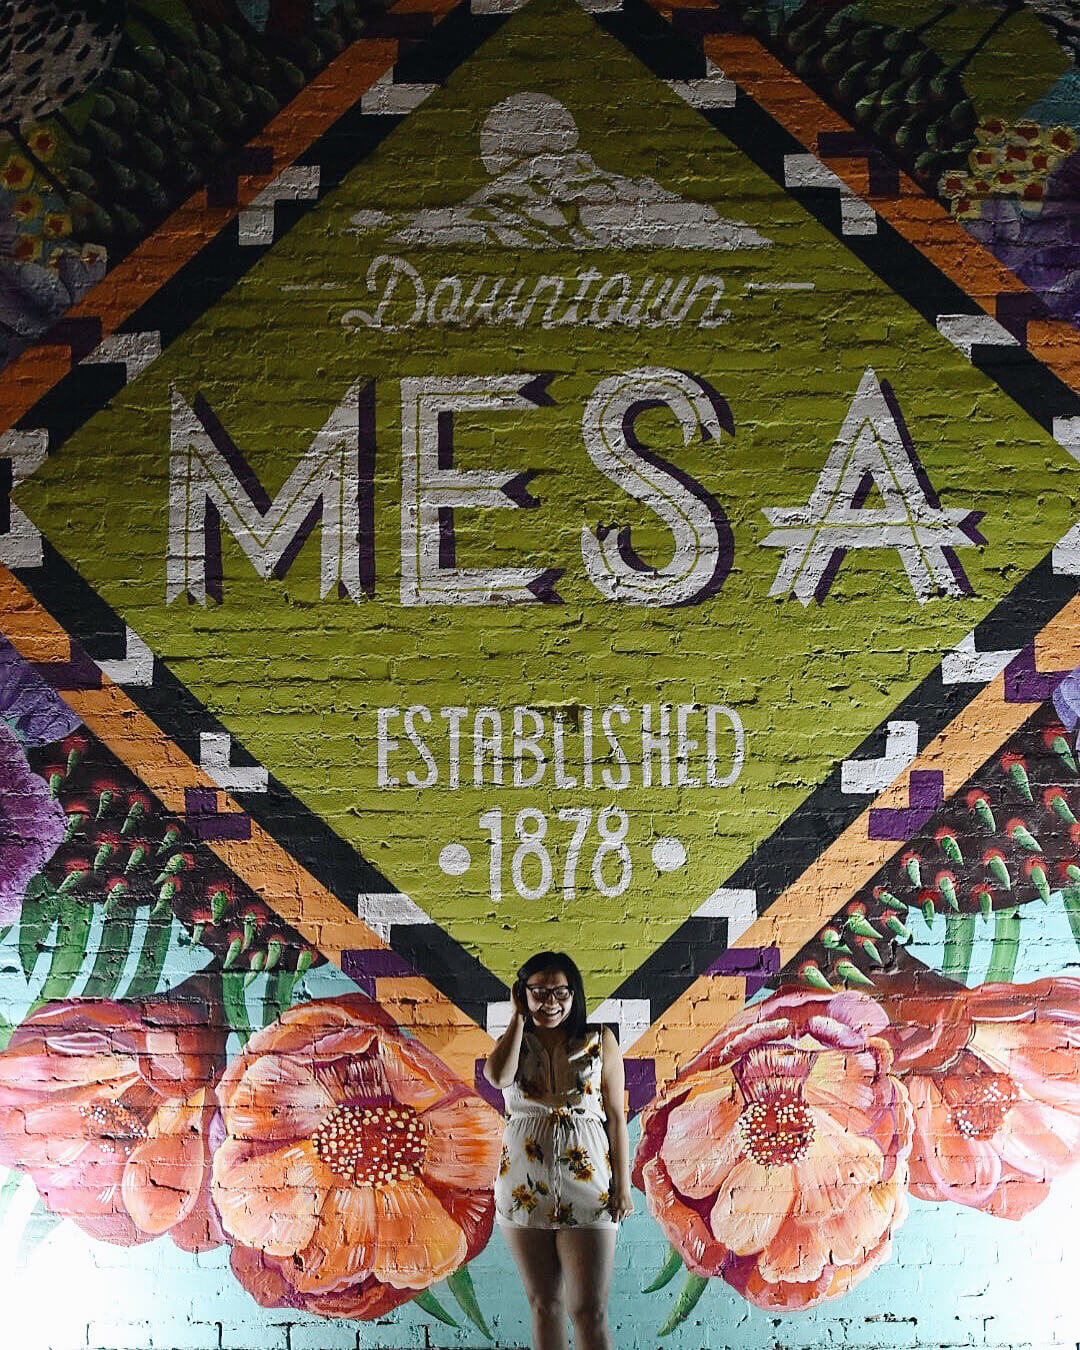 Instagrammable Walls of Mesa Arizona Murals Travel Visit Downtown